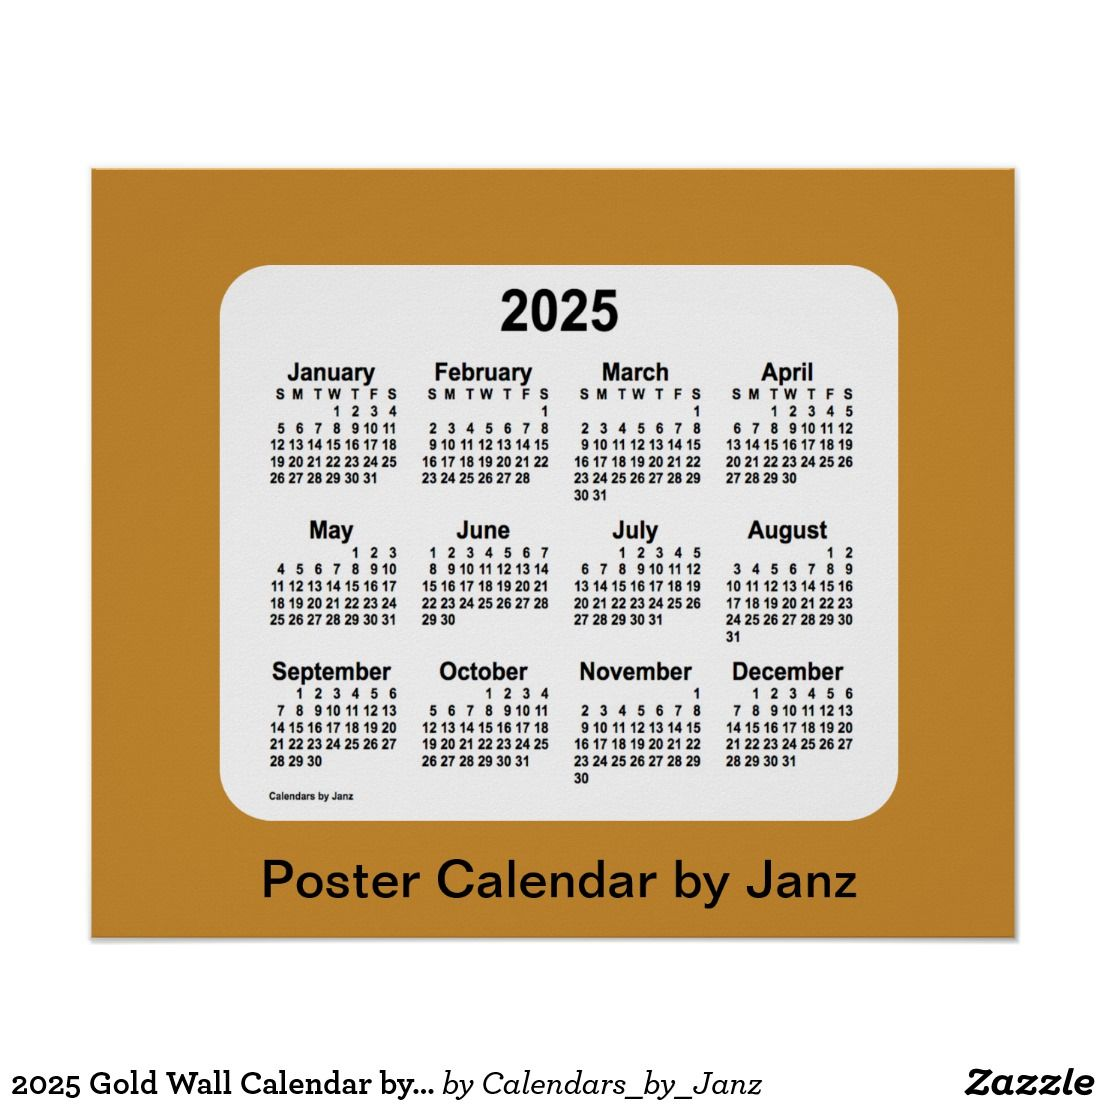 2025 Gold Wall Calendar By Janz Poster Zazzle Com In 2019 2025